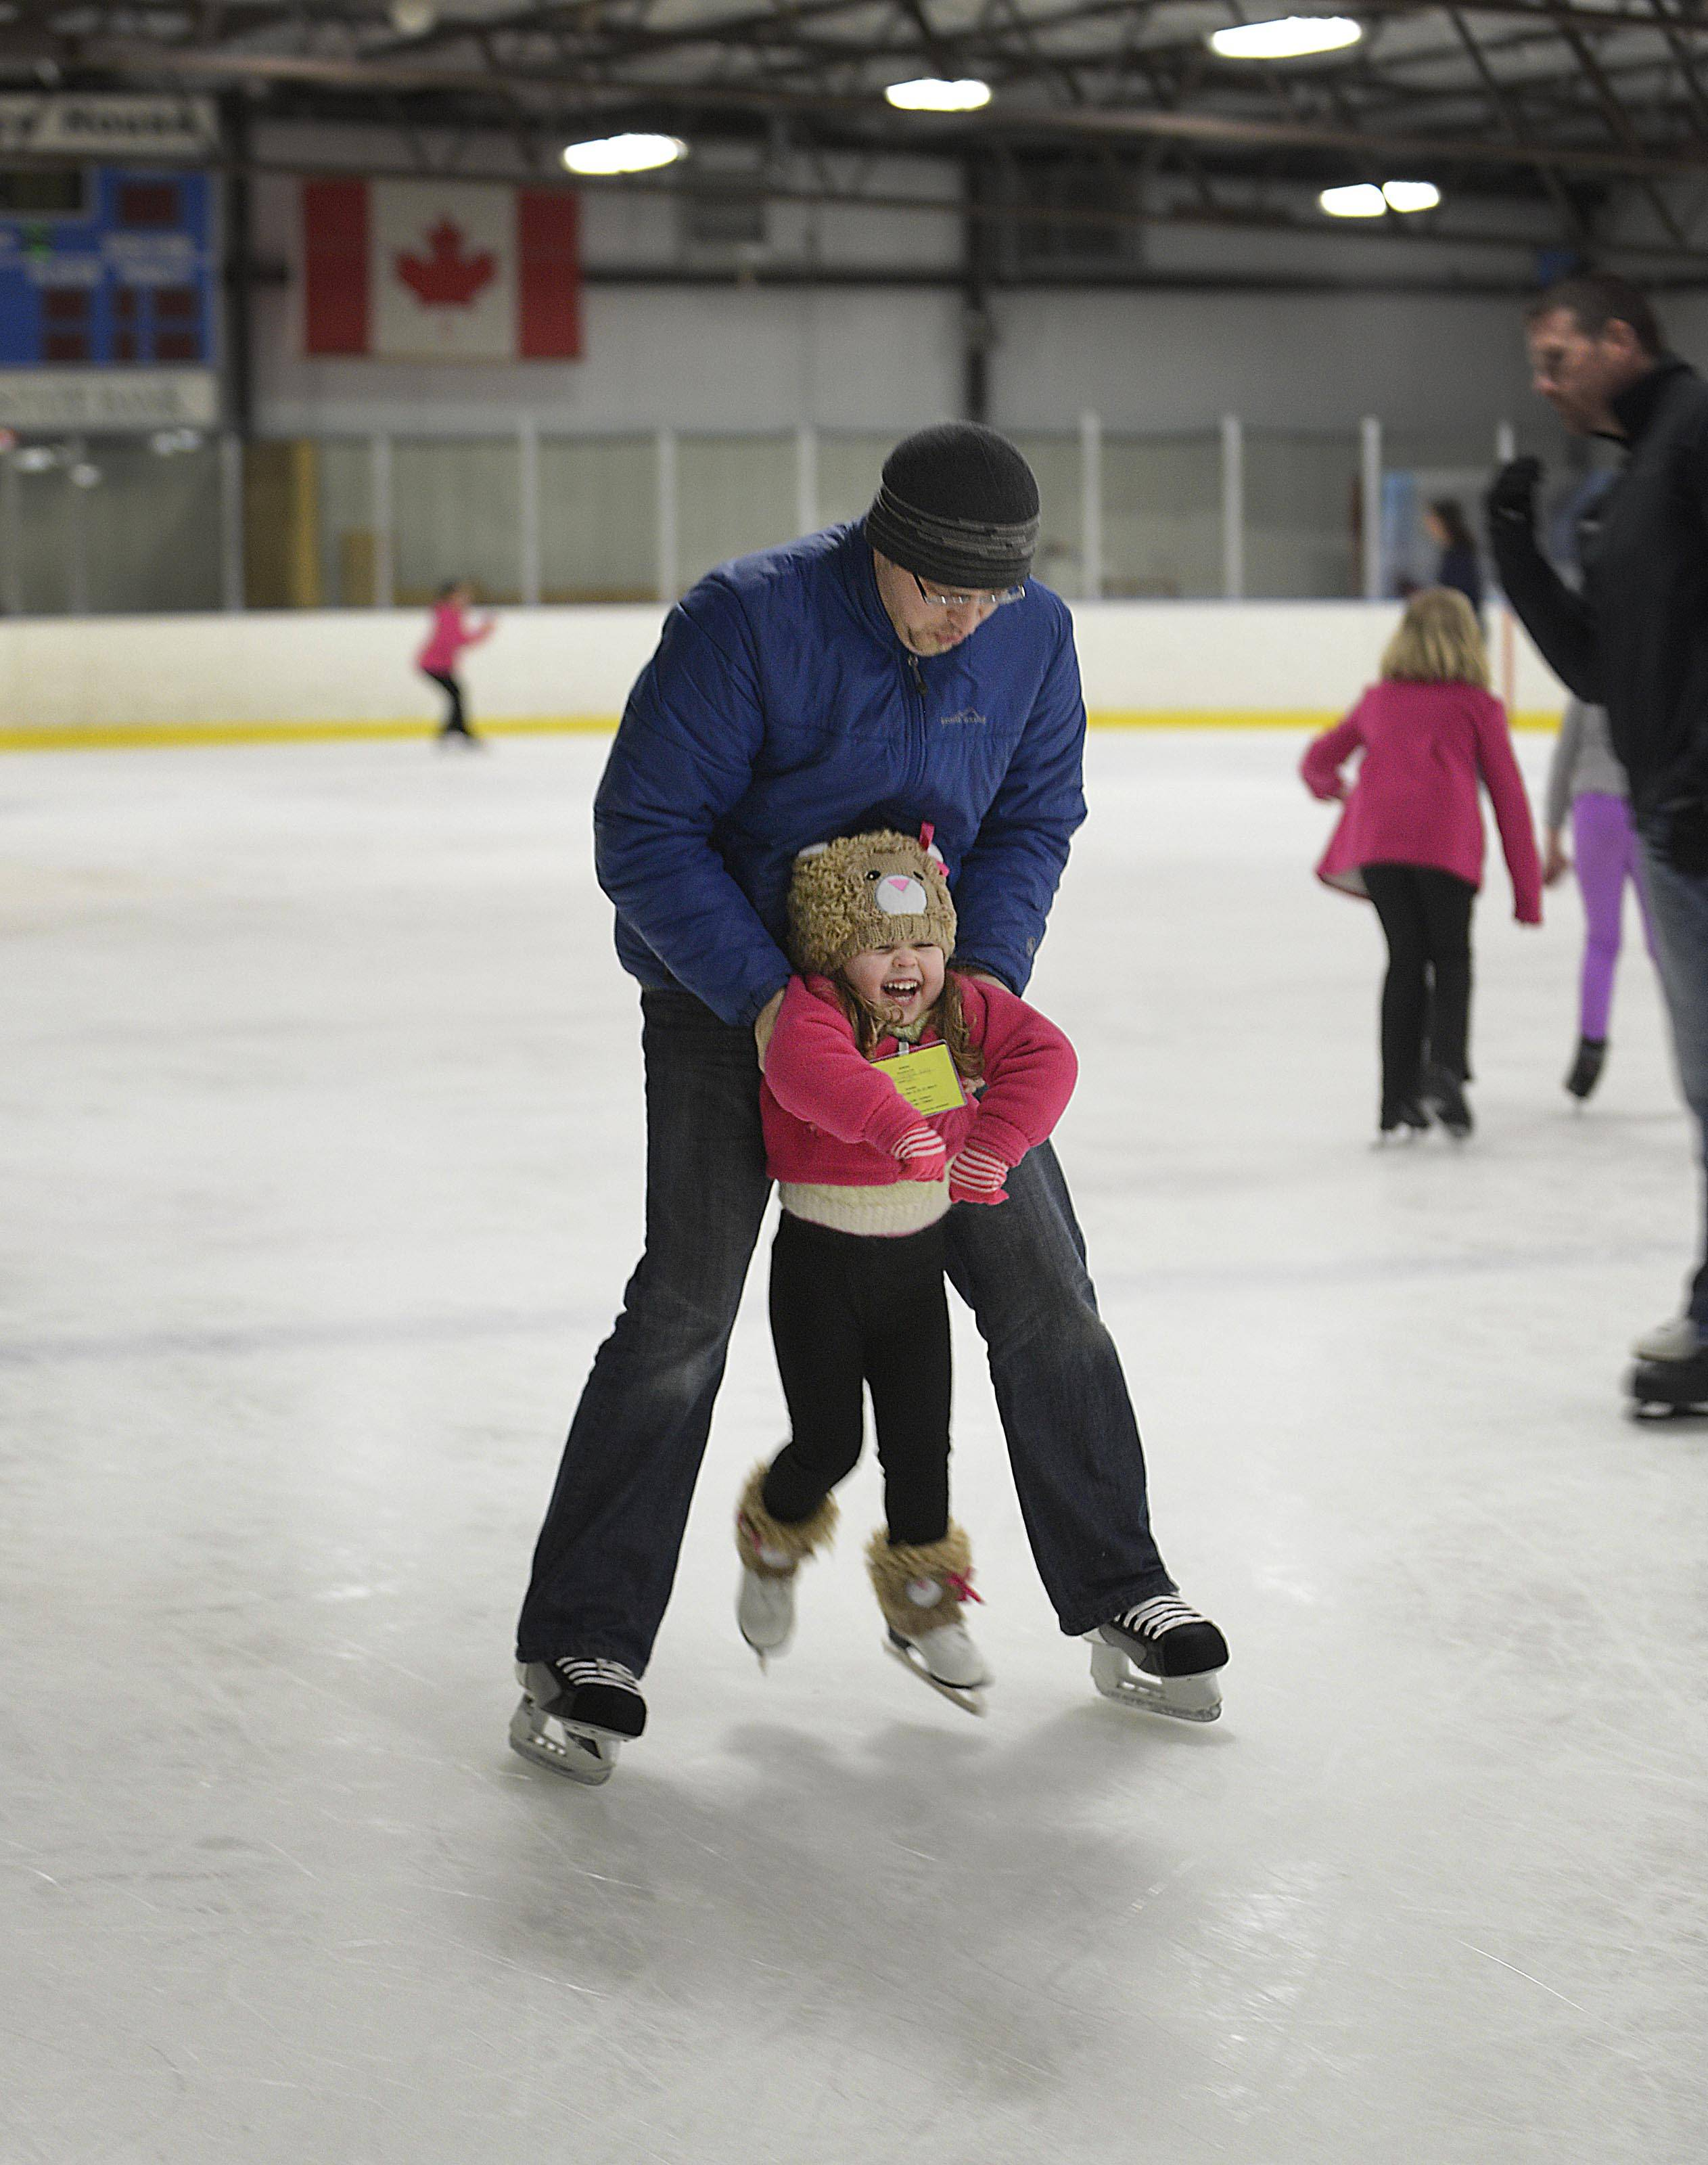 3-year-old Samantha Kay gets a lift from her dad, Vitali, of Cary, during a free skate period during a beginners skating class at Crystal Ice House.